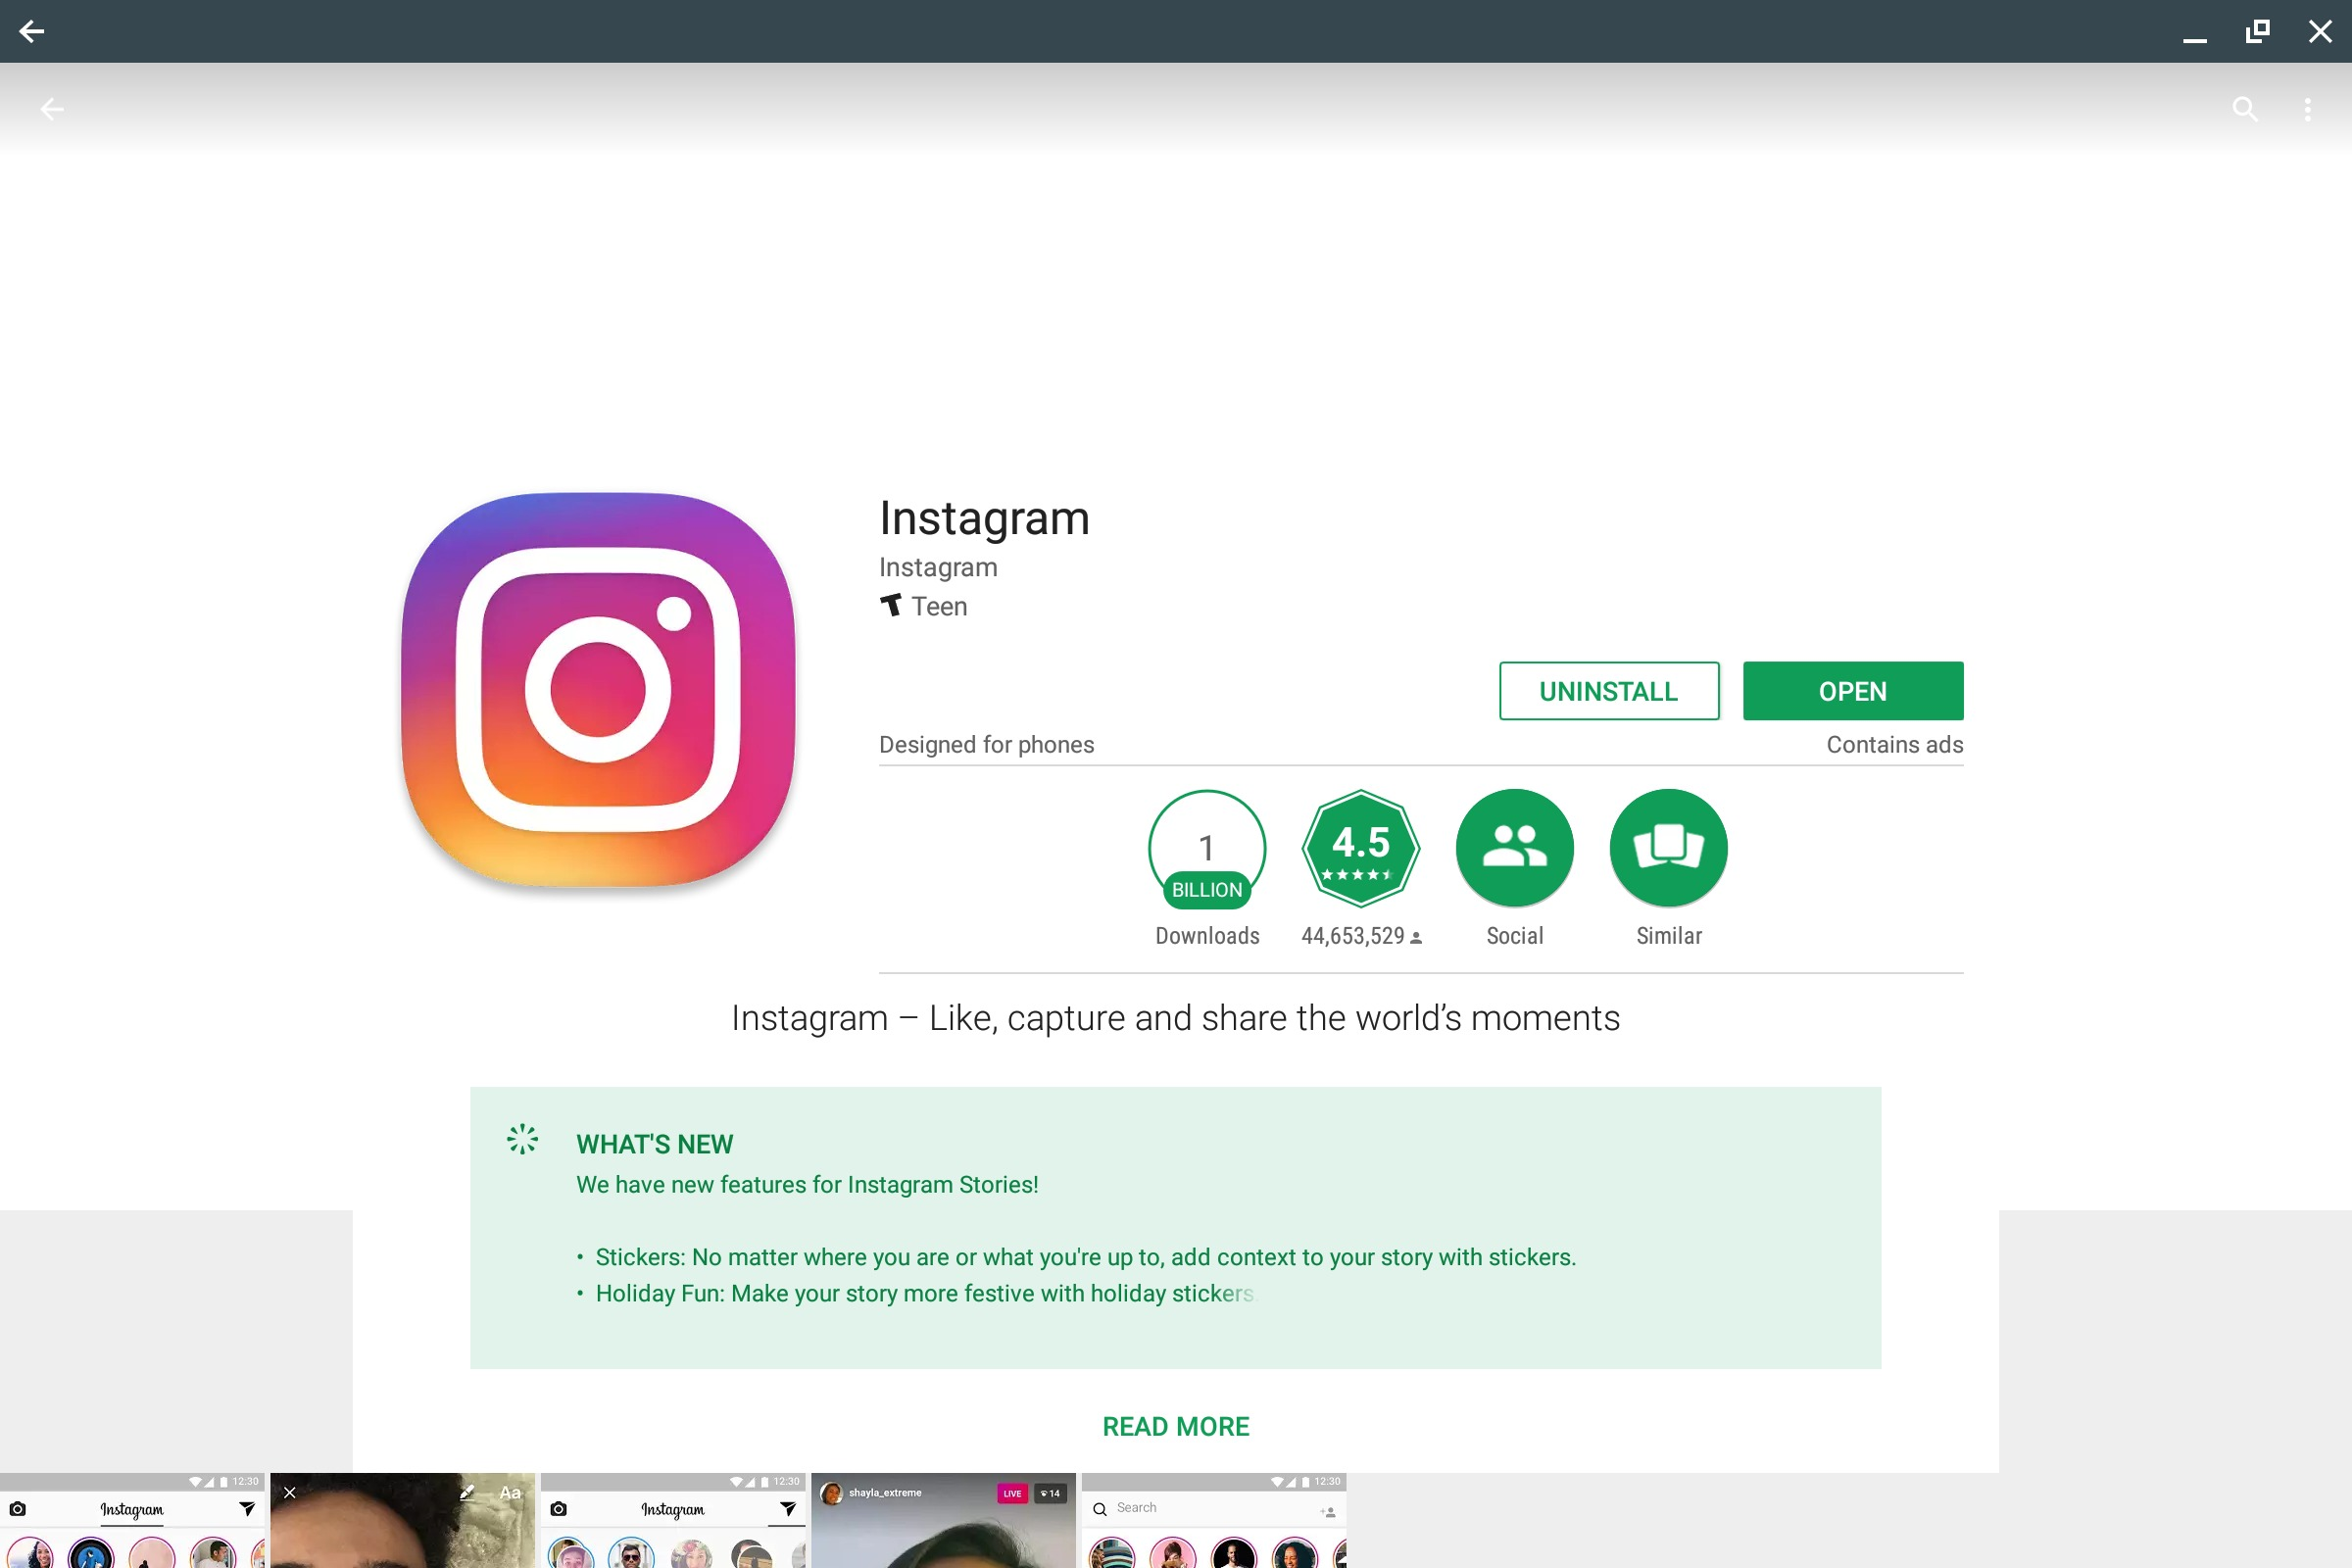 How To View Instagram DMs On Chrome For Desktop